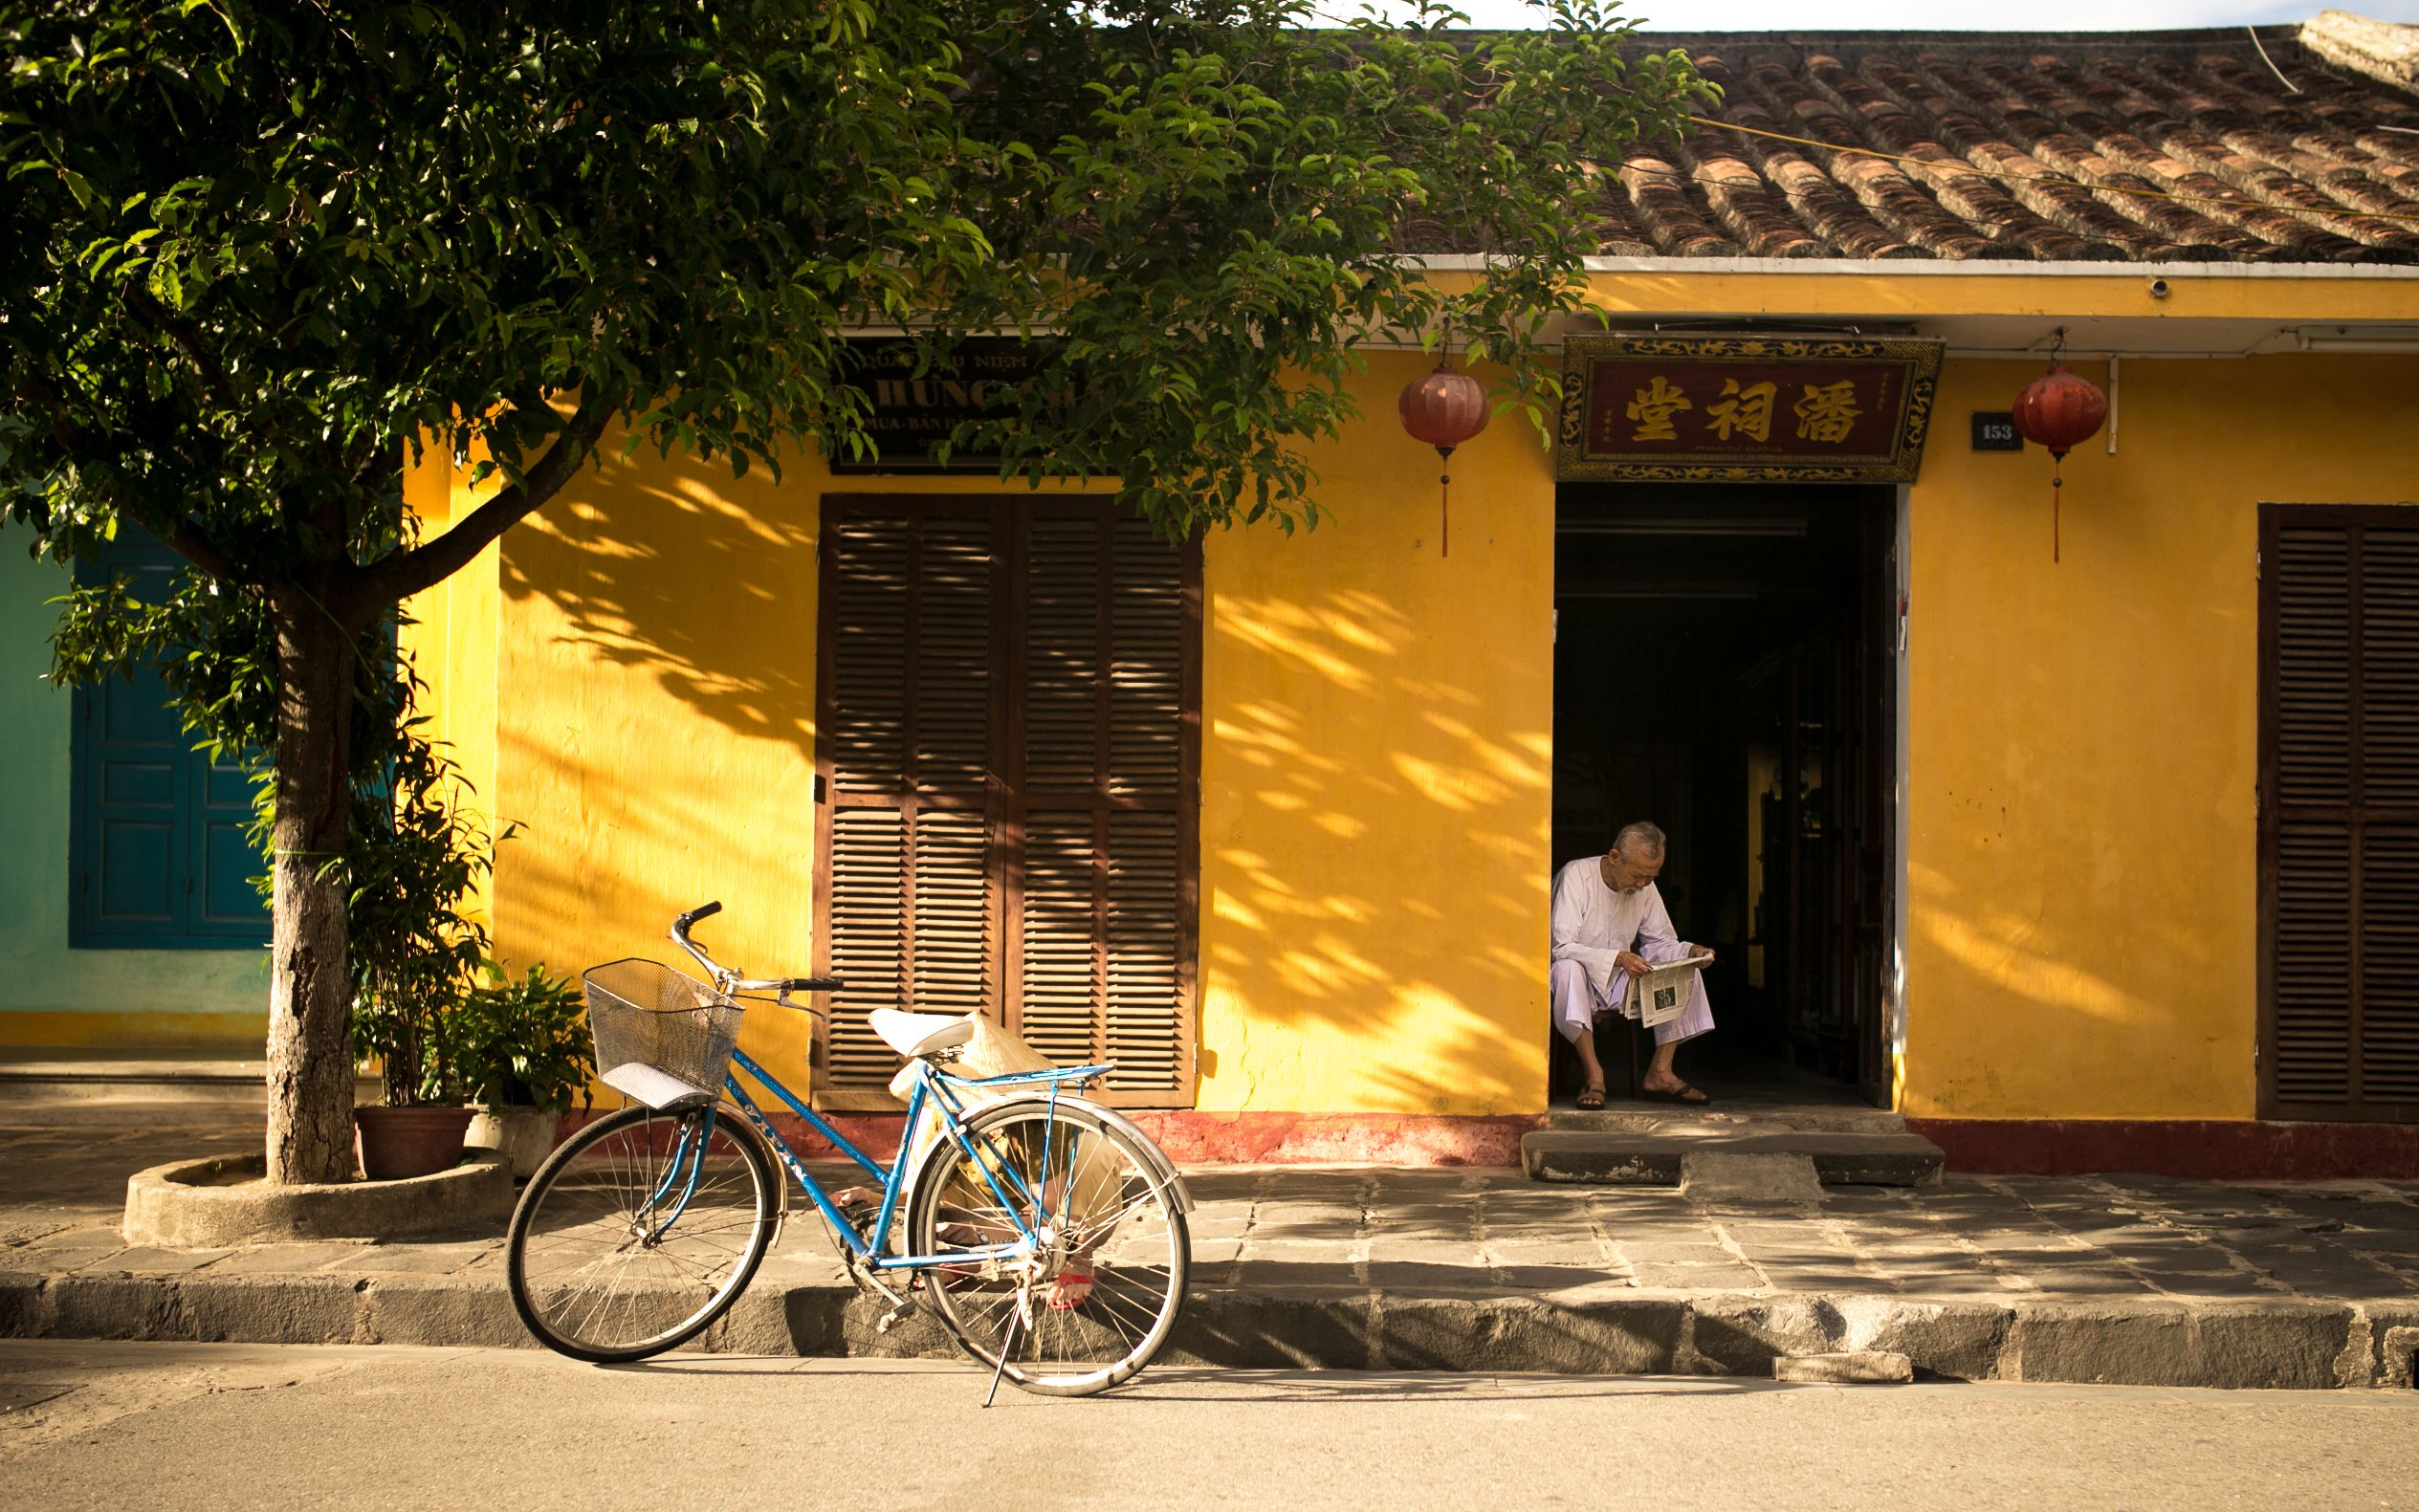 Bicycle parked outside a yellow building in Hoi An